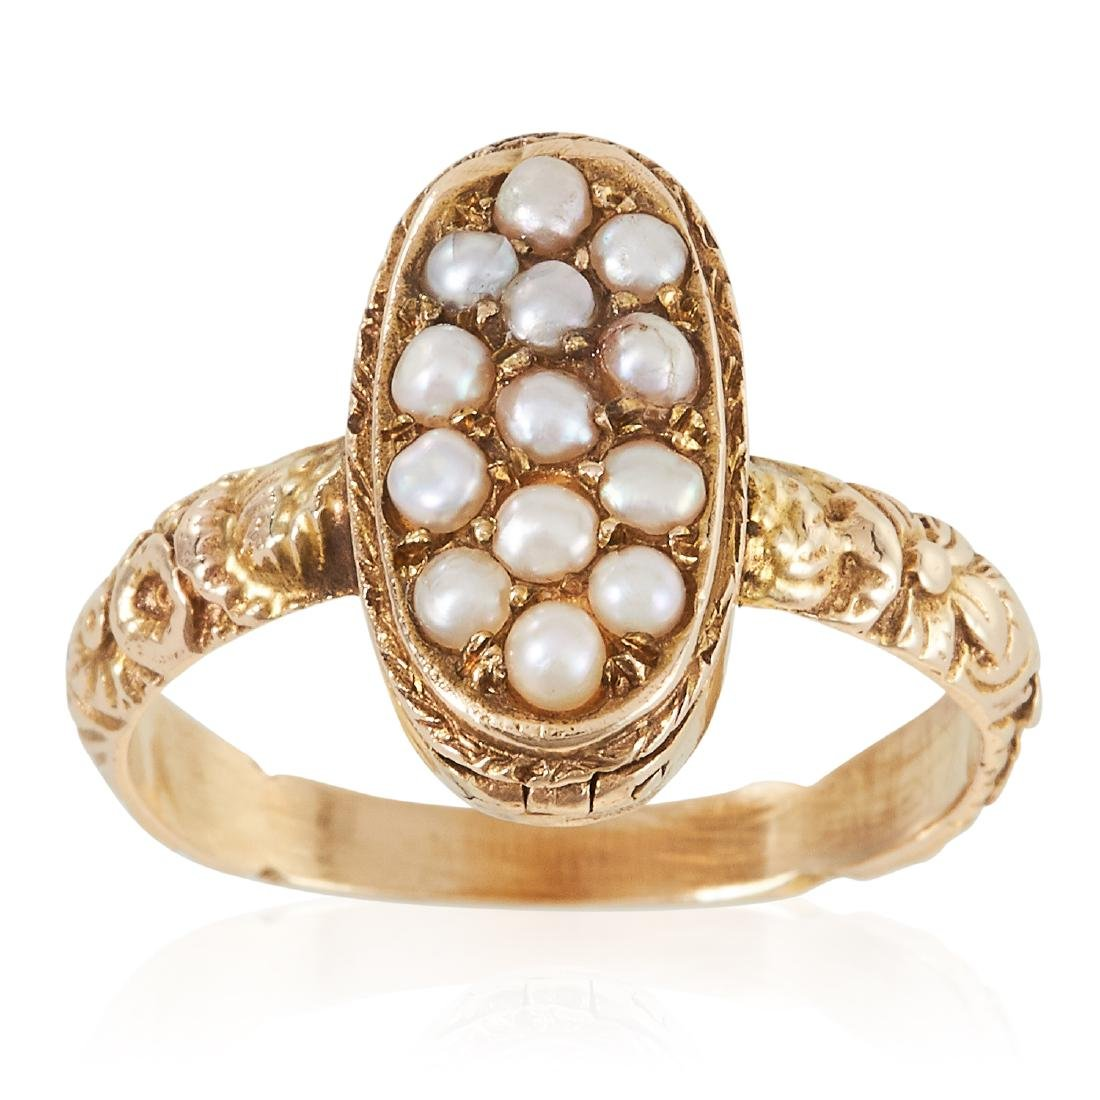 AN ANTIQUE PEARL POISON / LOCKET RING, 19TH CENTURY in